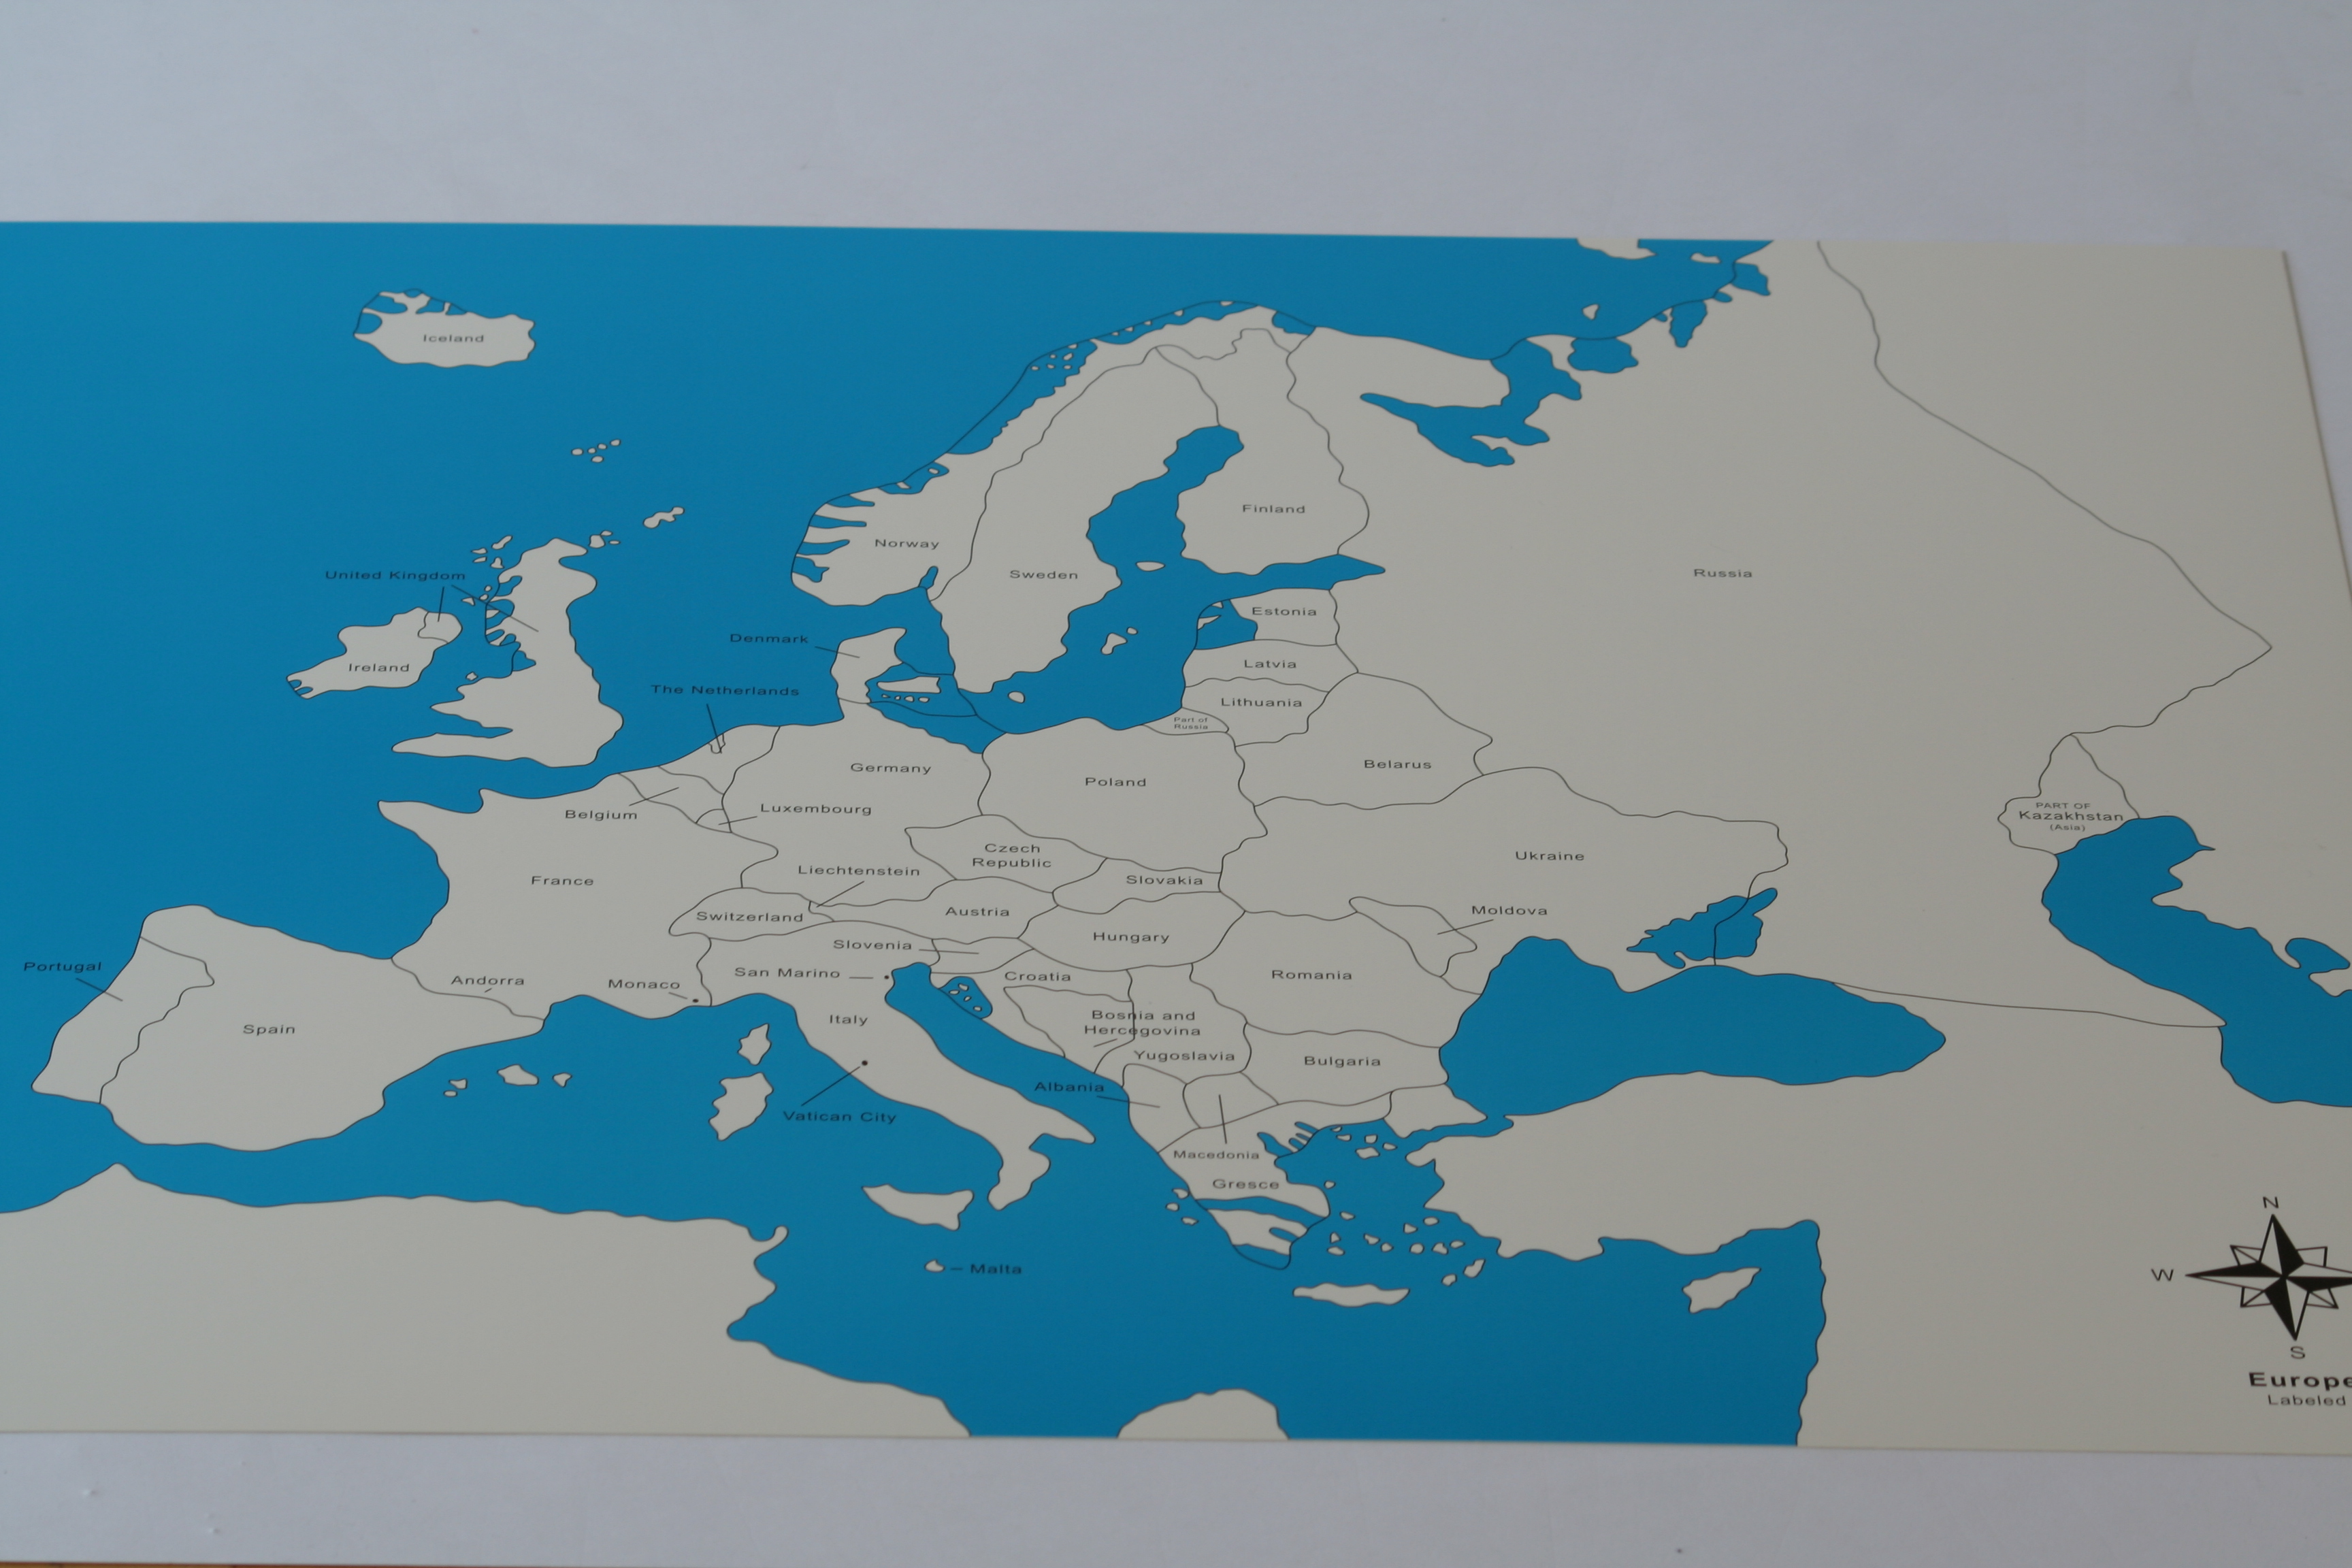 2 Control maps of Europe (labelled +unlabelled)